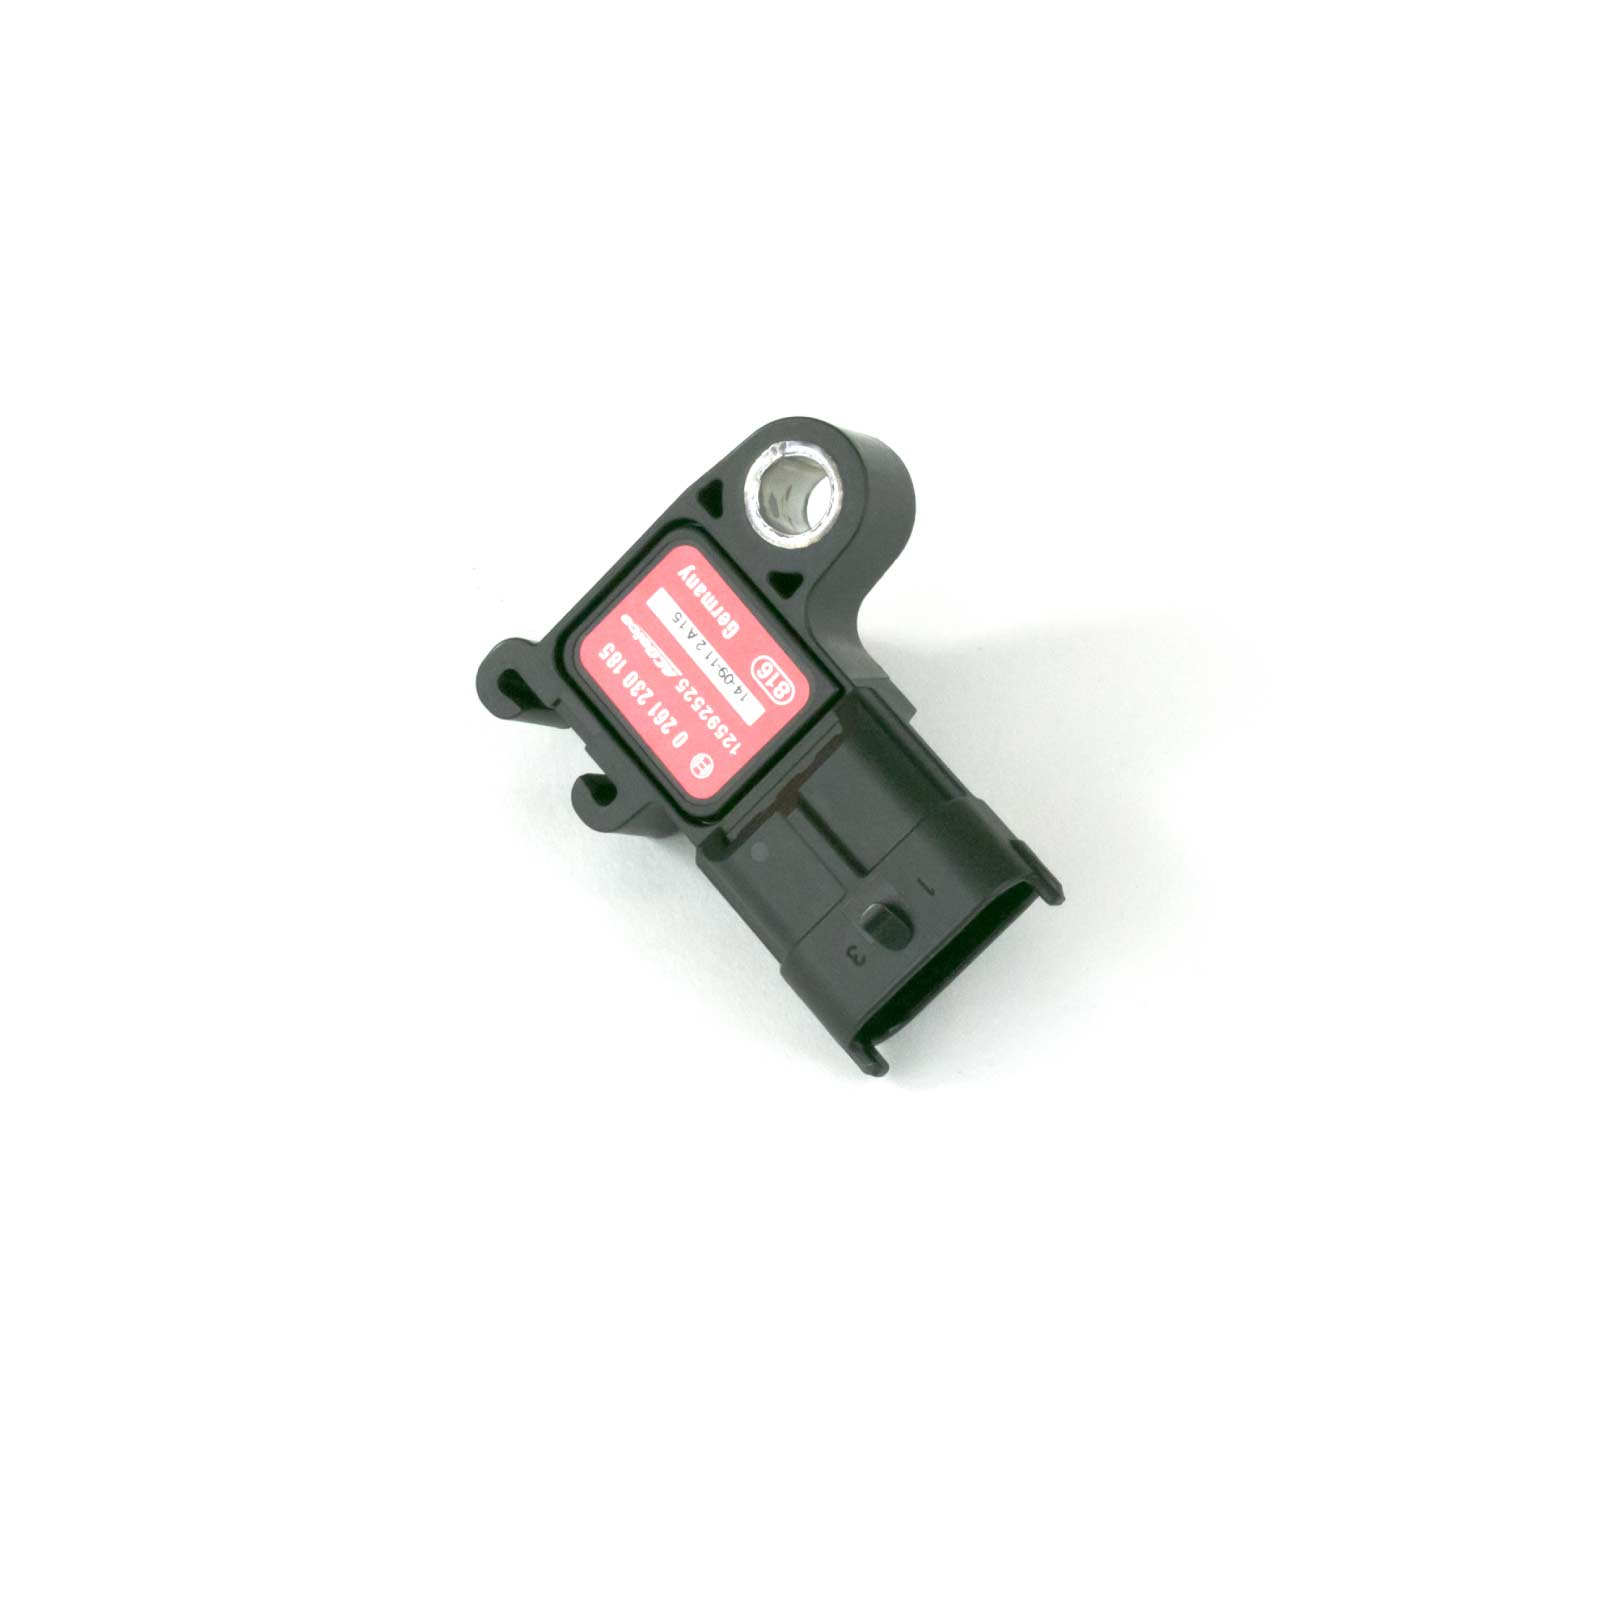 GM 3 Bar MAP Sensor for LS9 & LSA ACDelco #12592525 | Top Street  Performance - Free Shipping over $49Top Street Performance